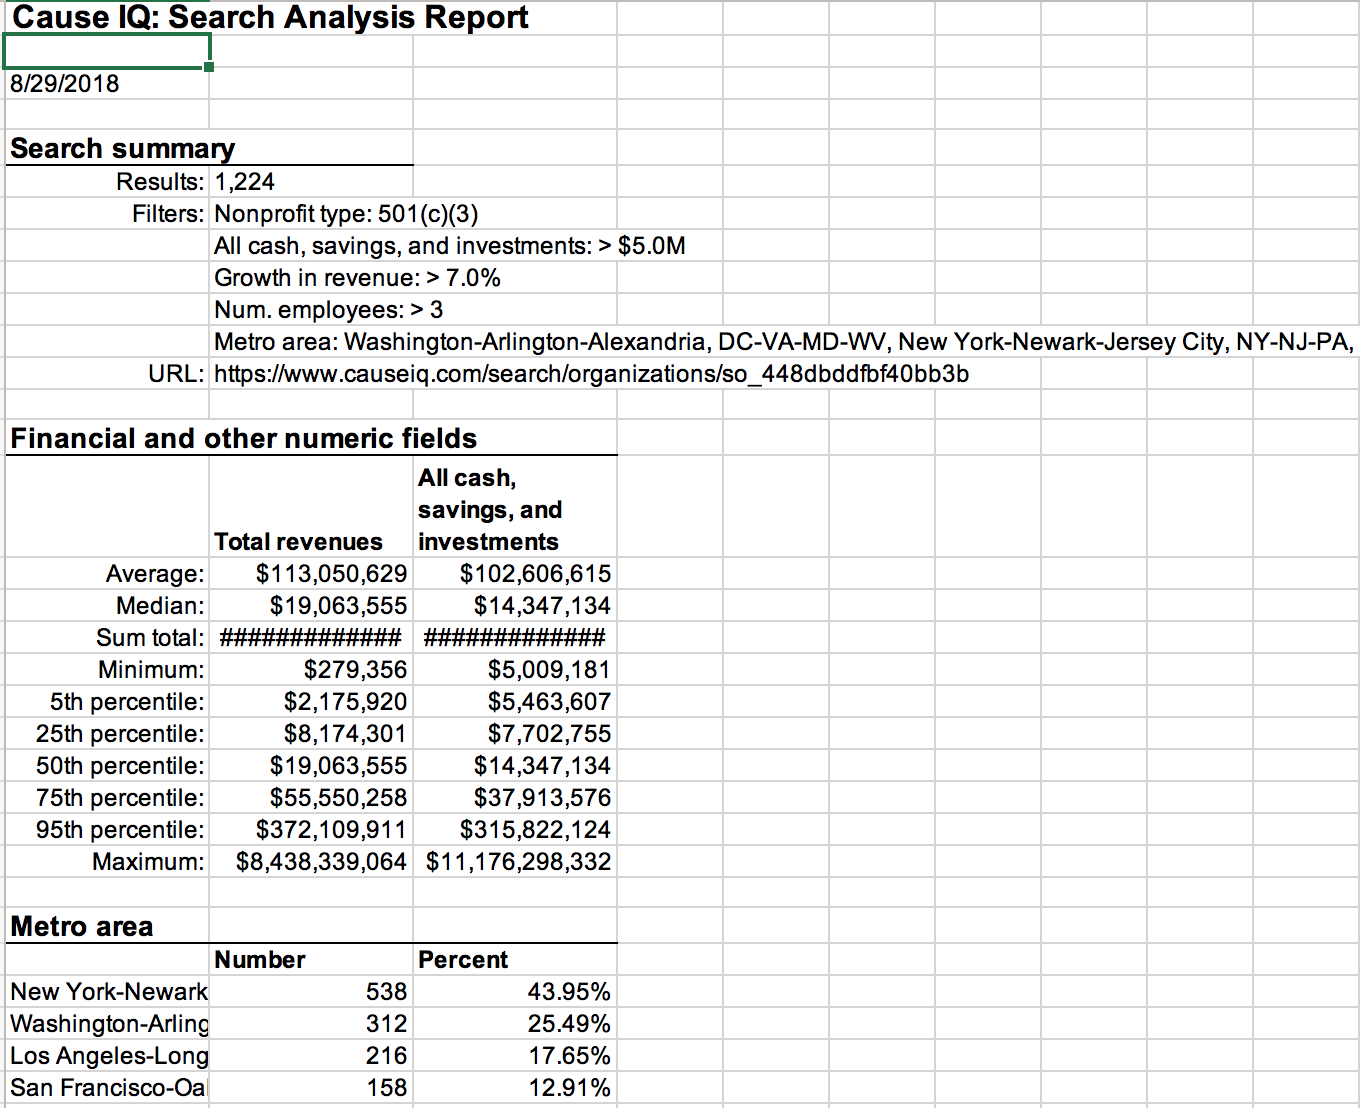 Download your search analyze report to Excel